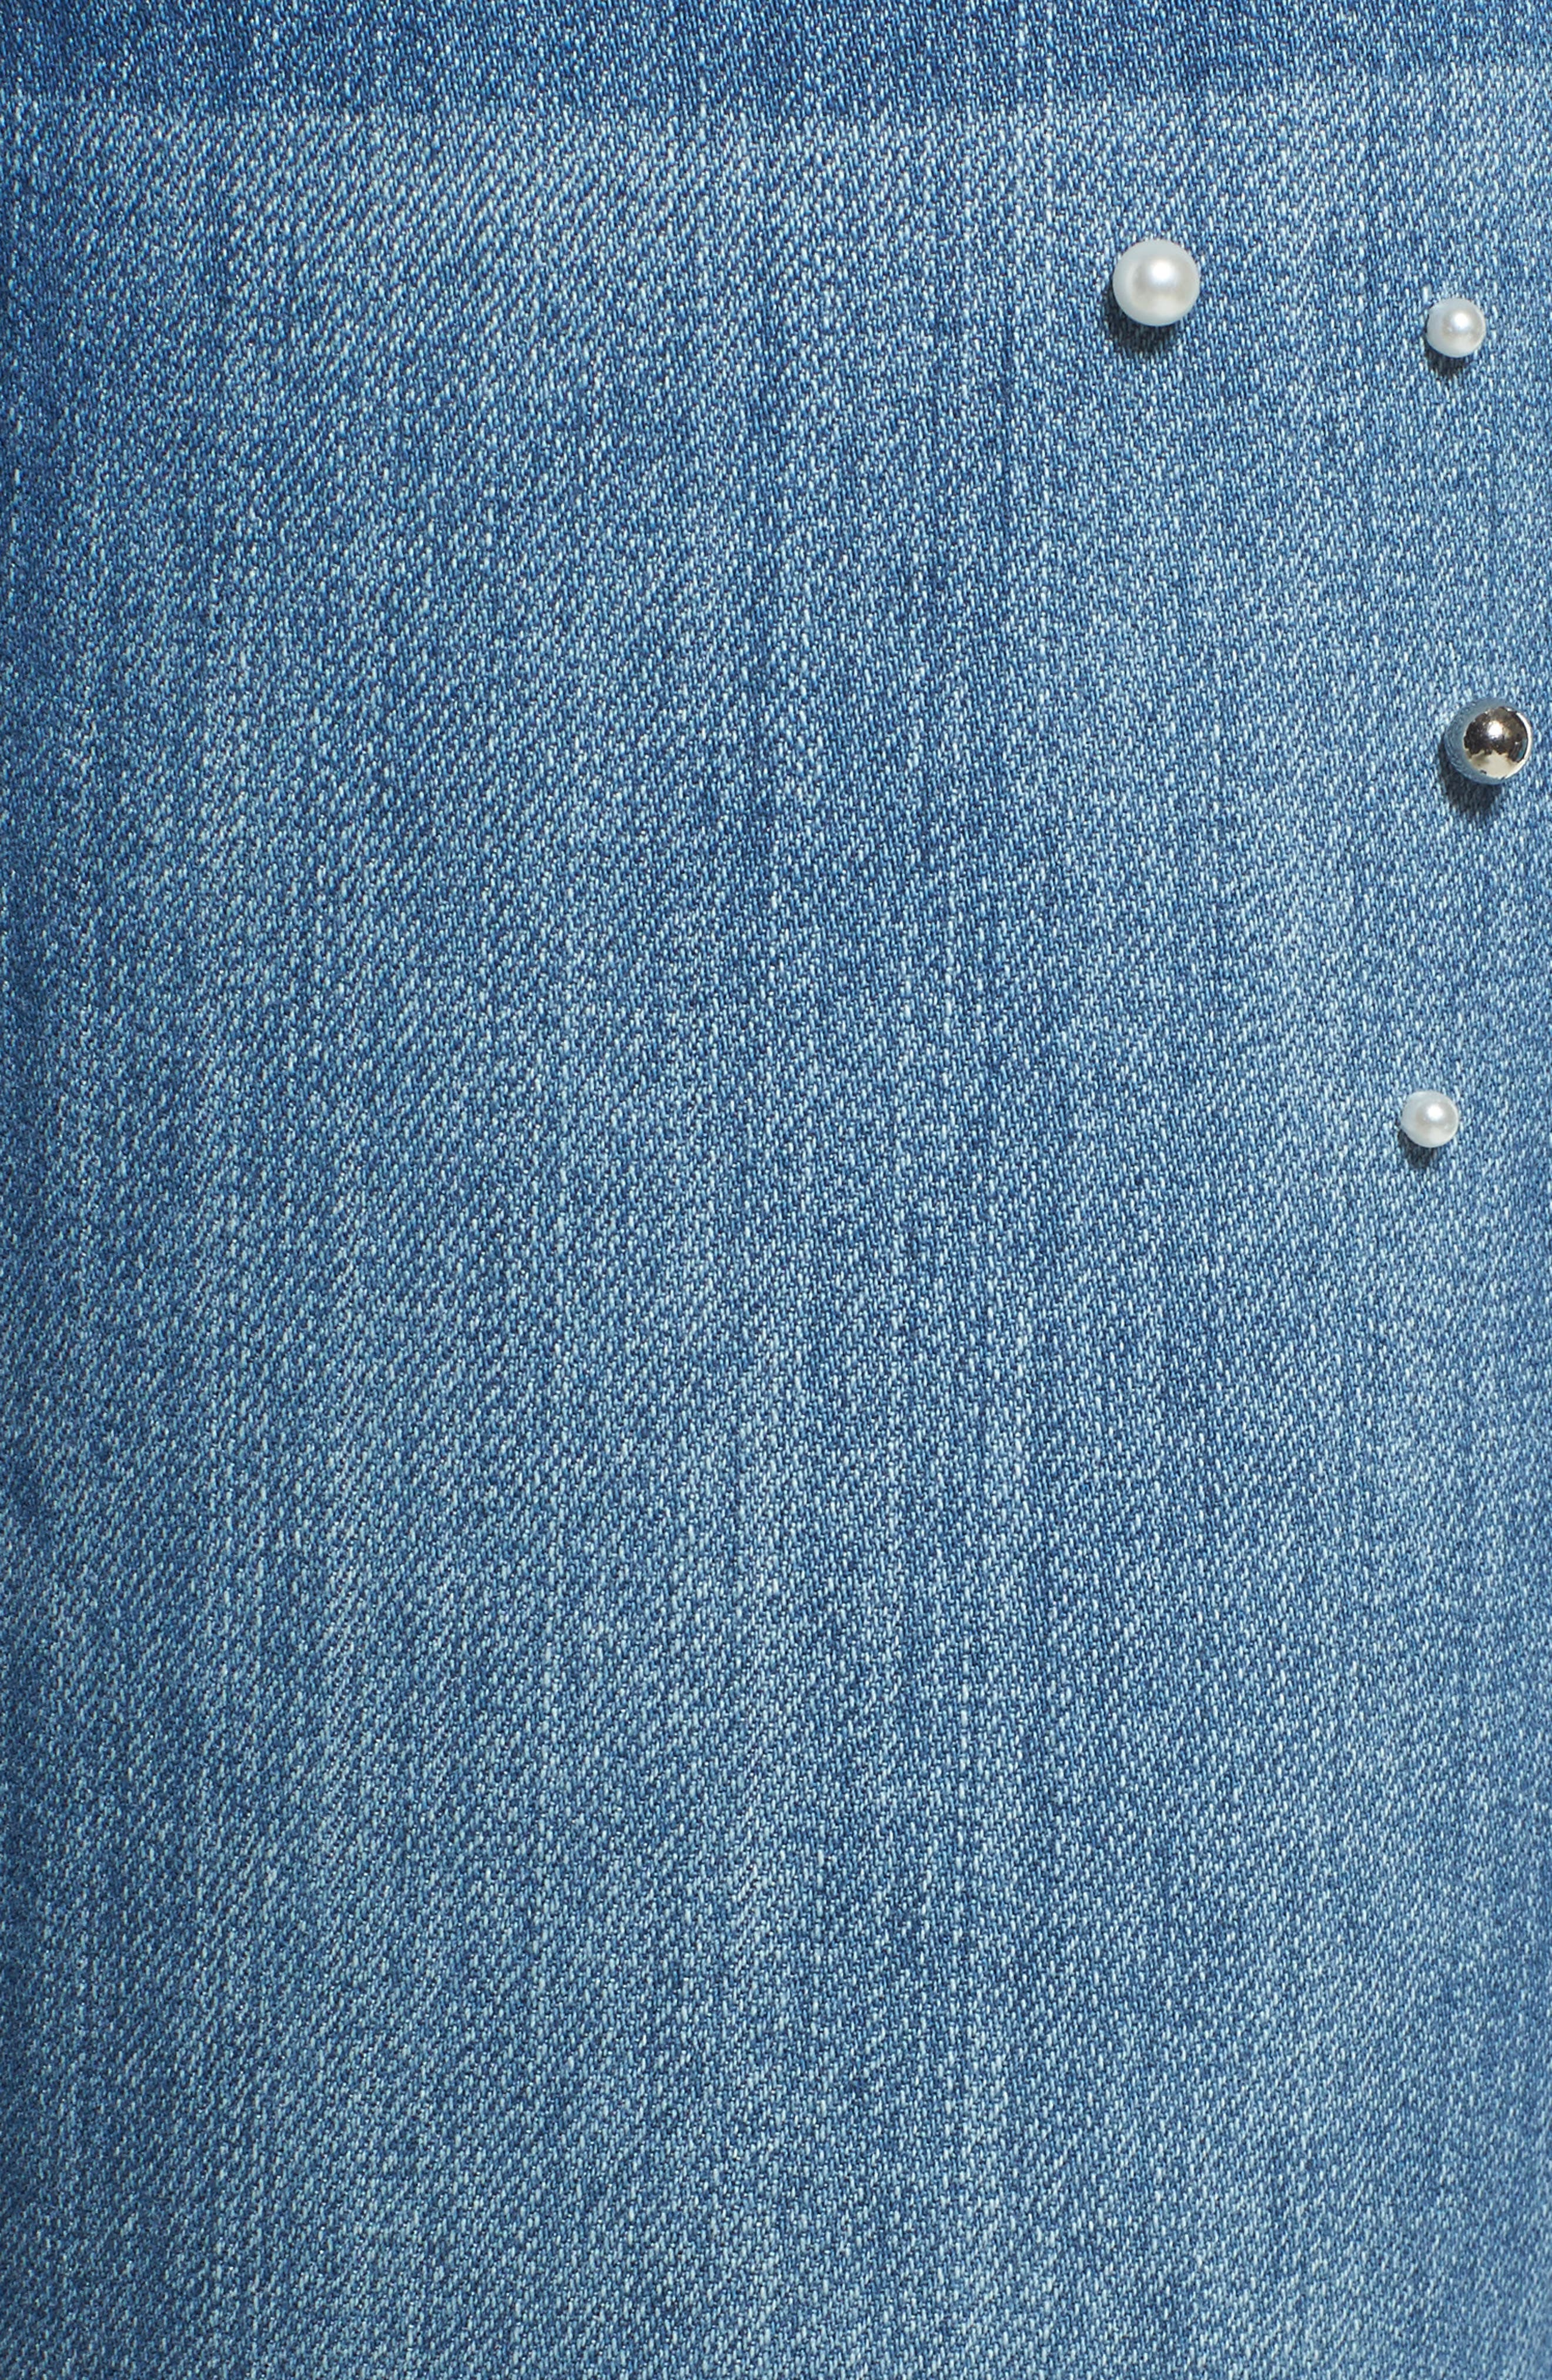 Pearl Detail Skinny Jeans,                             Alternate thumbnail 5, color,                             426